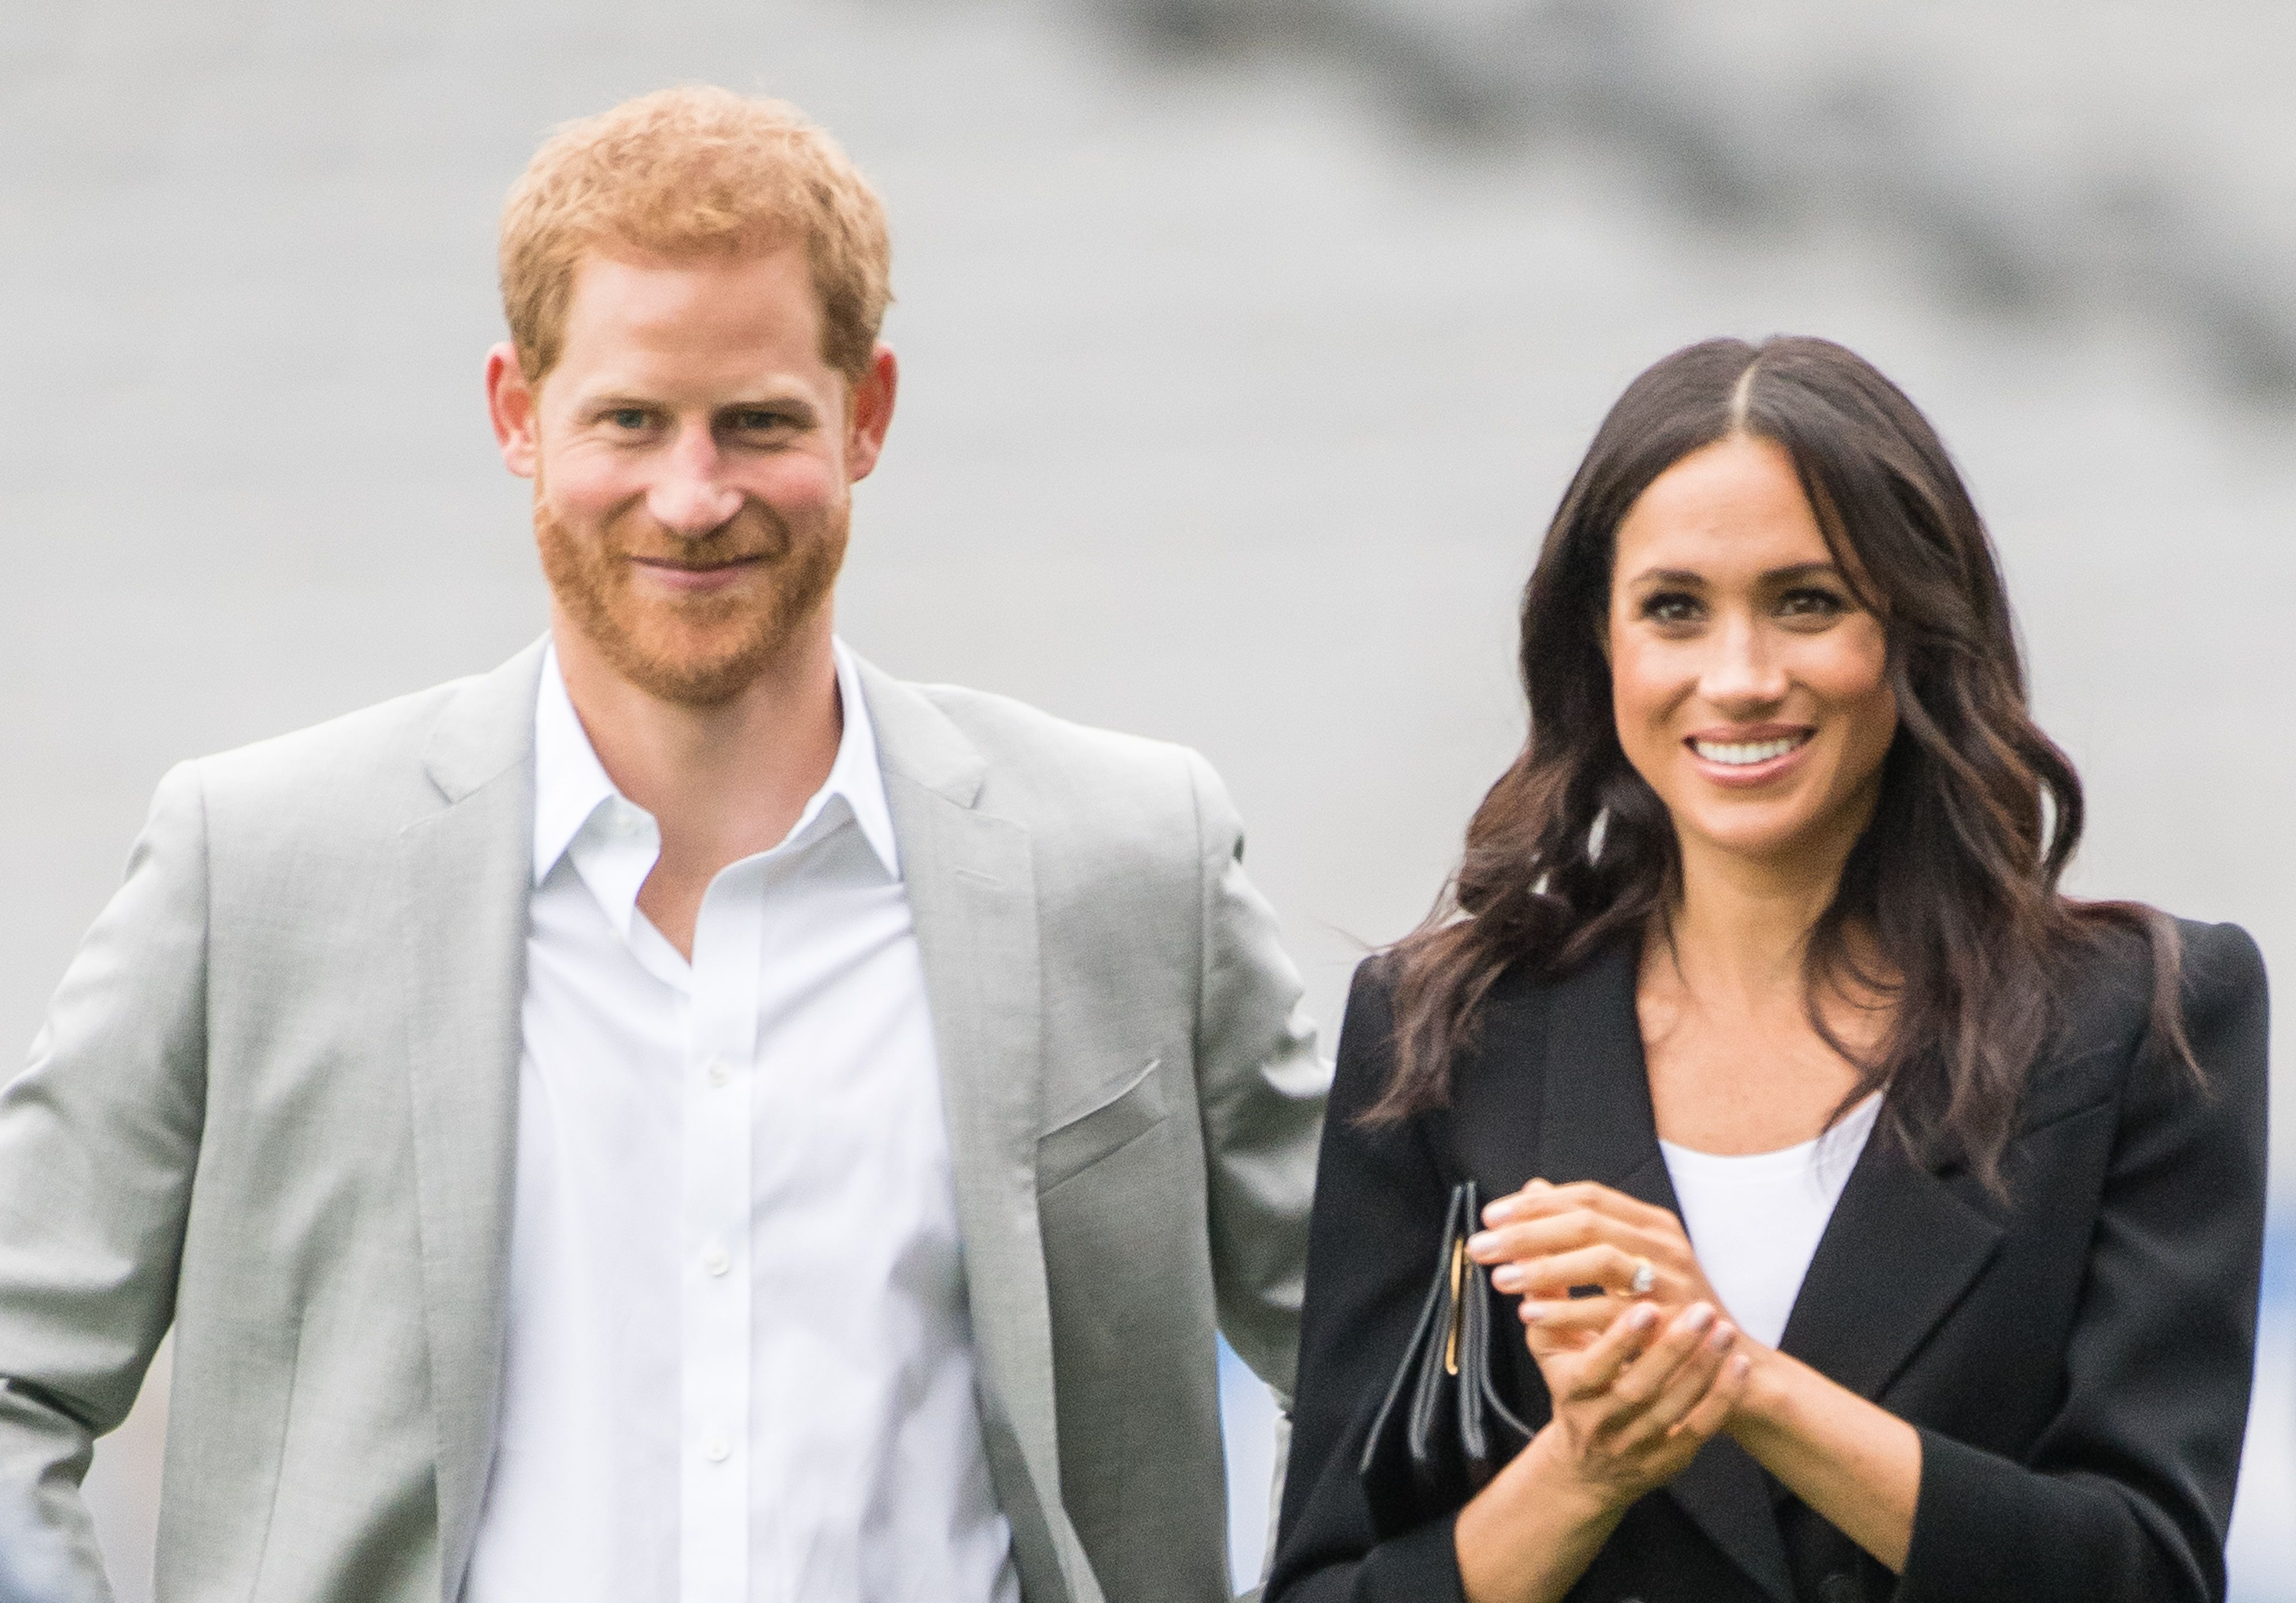 Discussion on this topic: Meghan Markle and Prince Harry reportedly found , meghan-markle-and-prince-harry-reportedly-found/